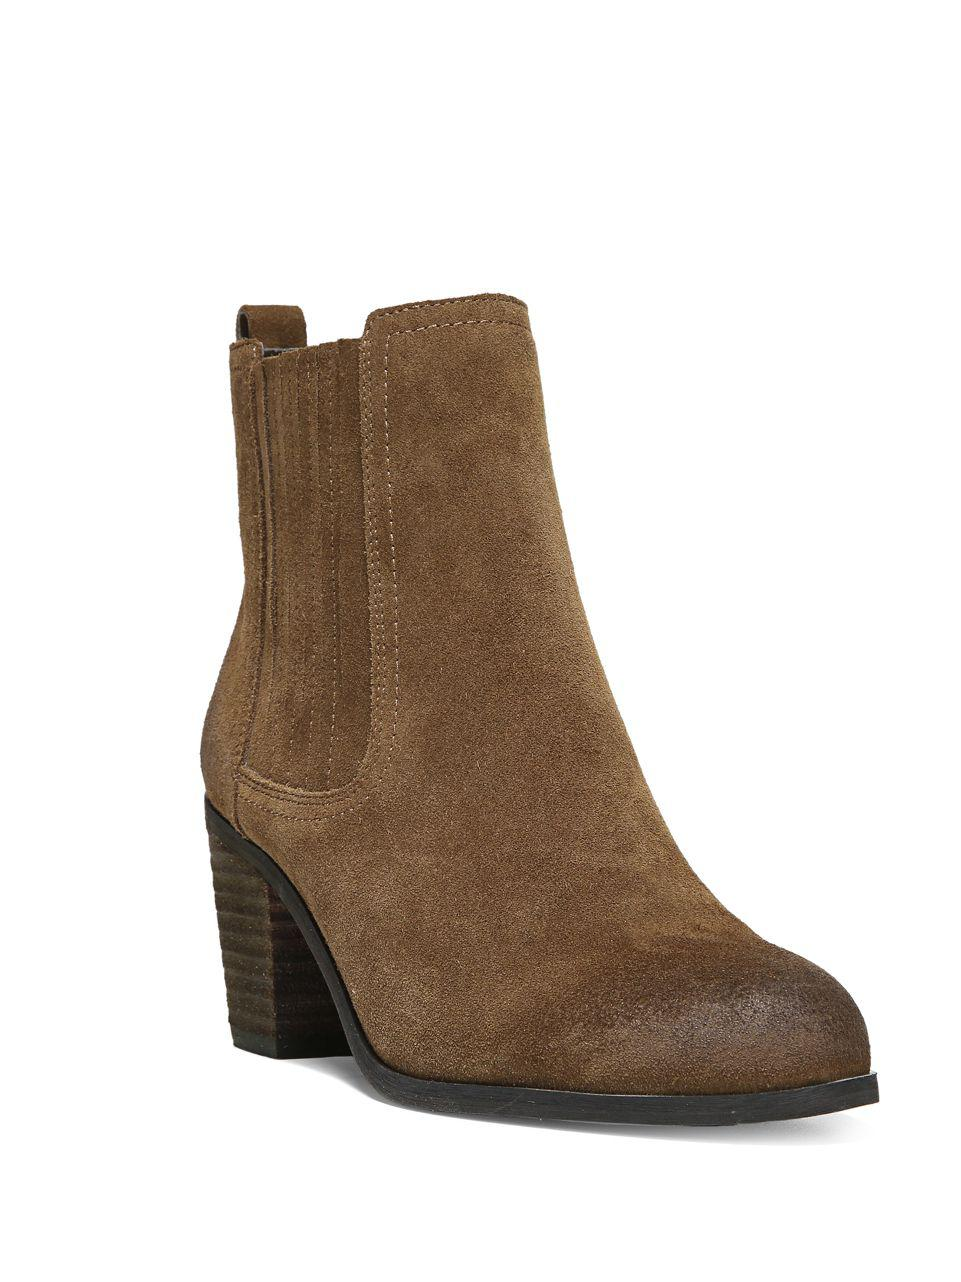 07abacae5 Lyst - Sam Edelman Lance Suede Ankle Boots in Brown